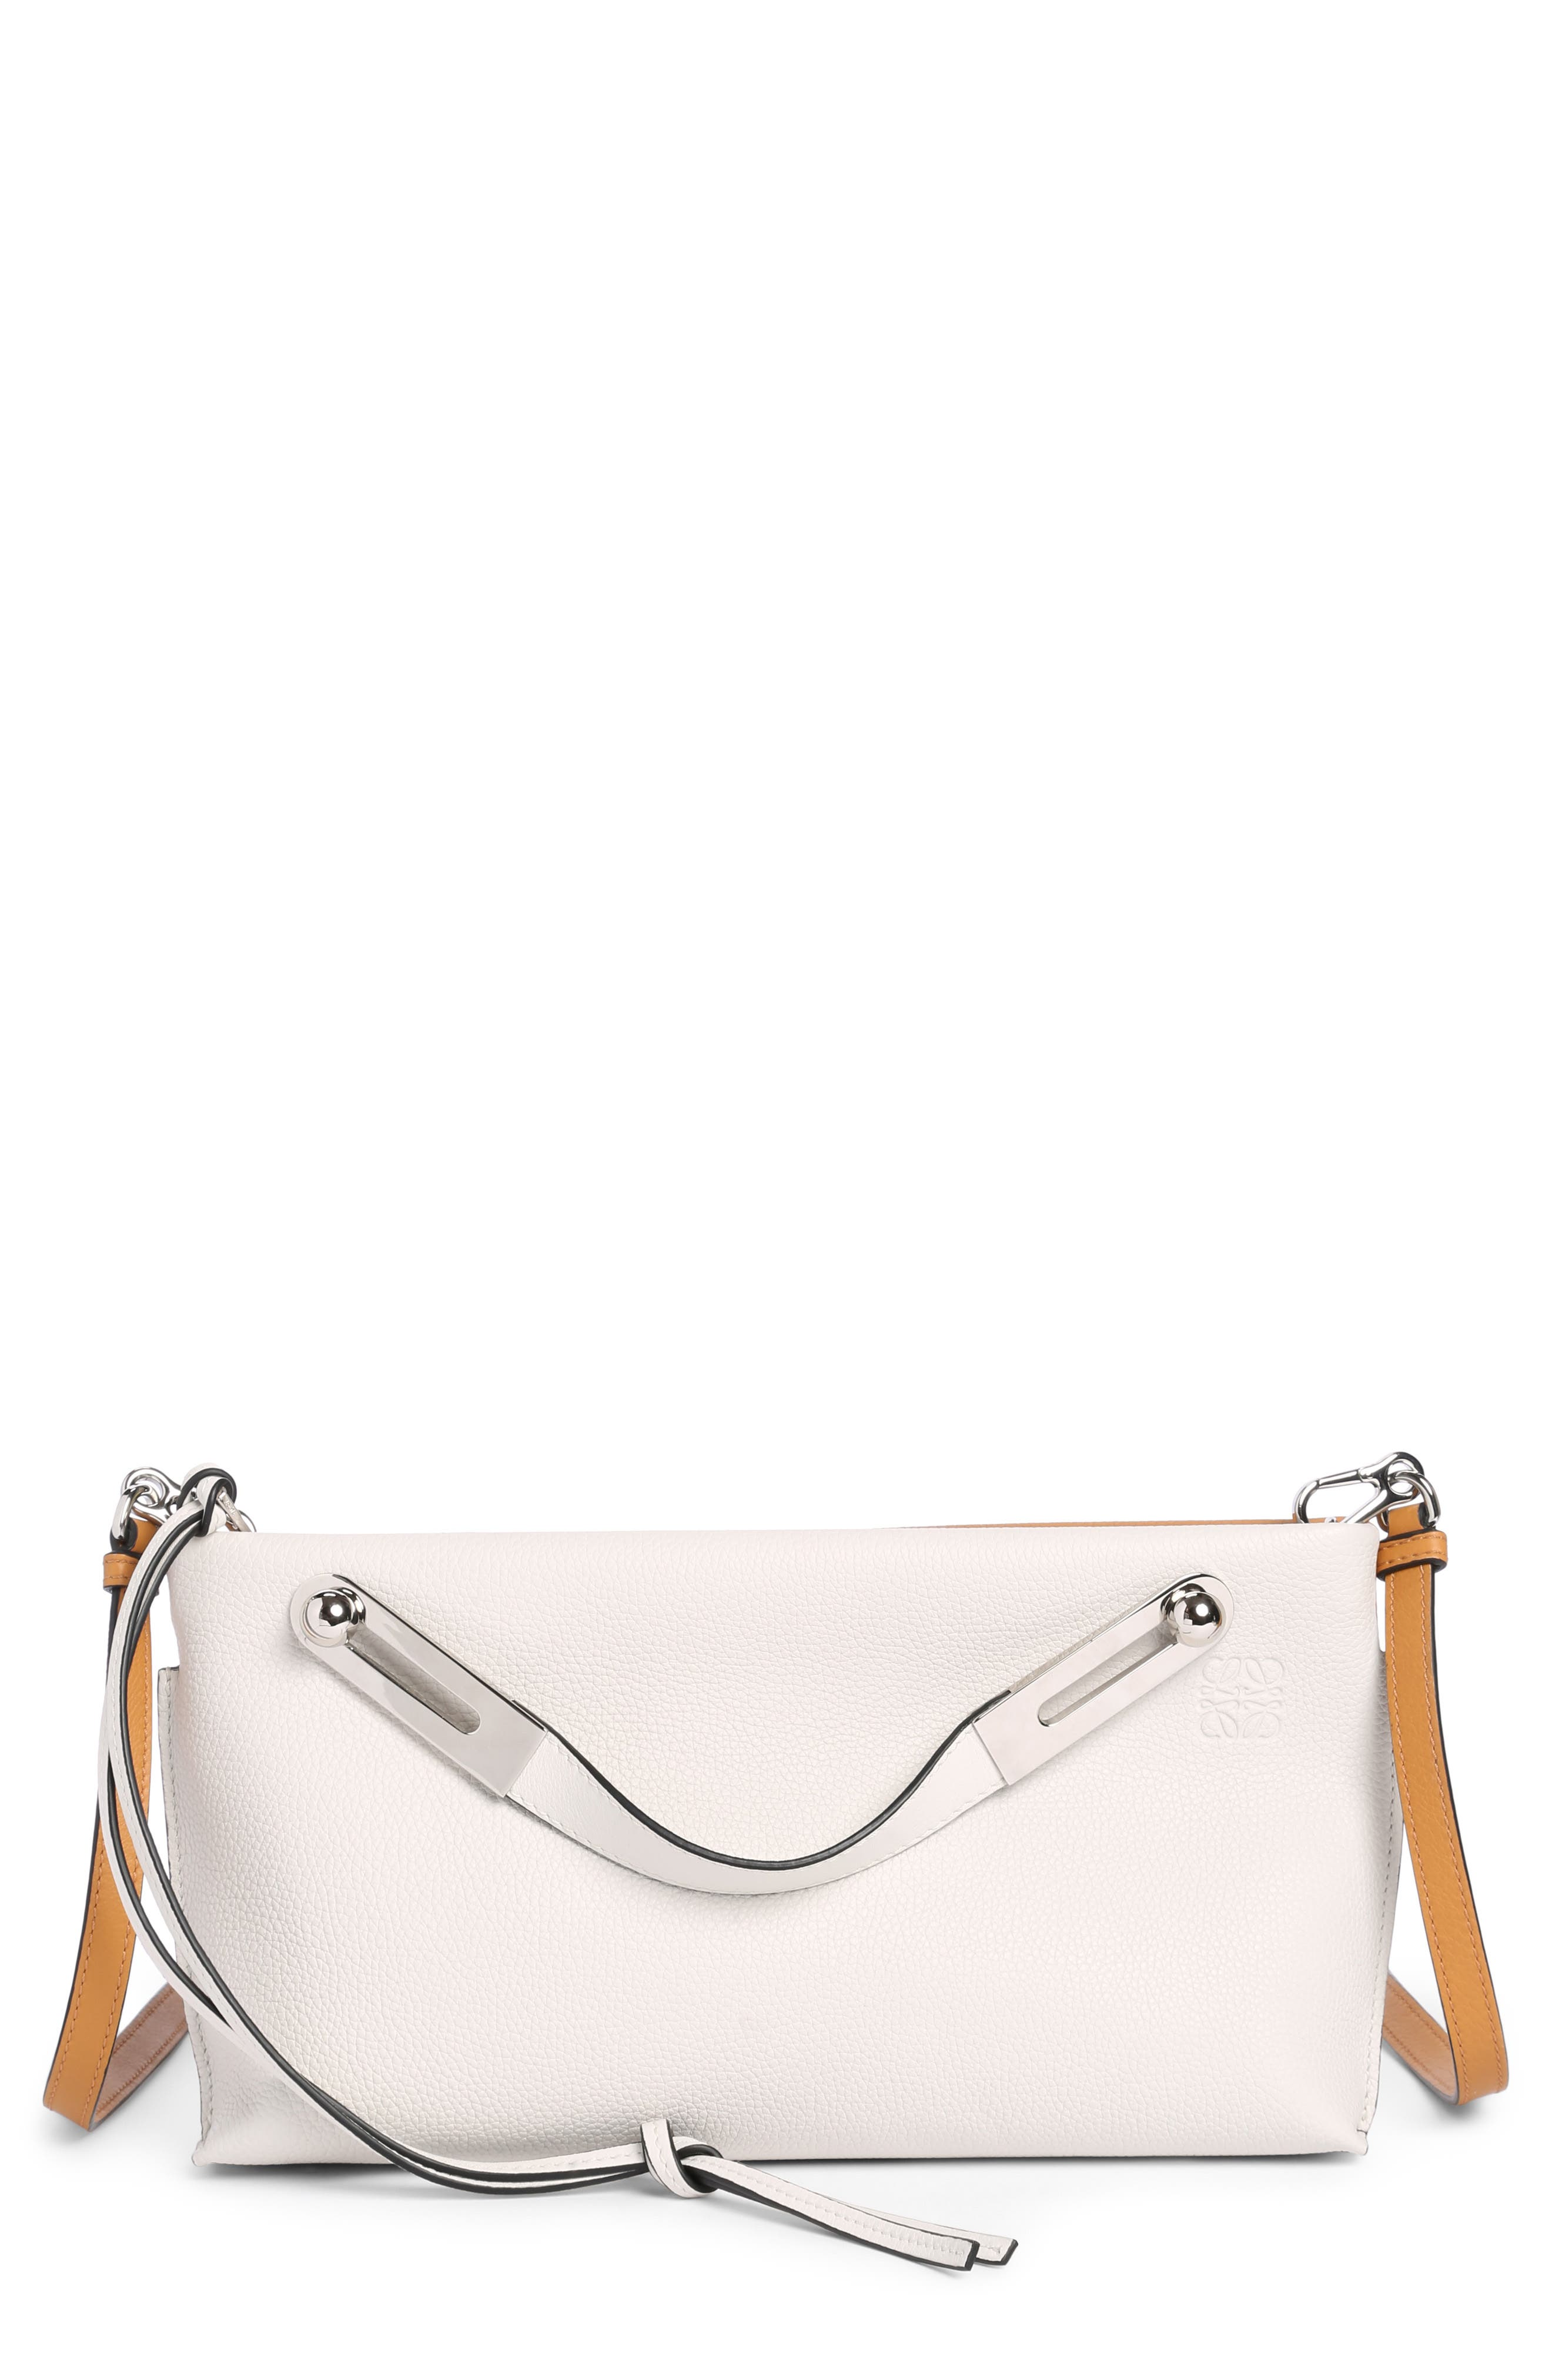 Small Missy Calfskin Leather Crossbody Bag,                         Main,                         color, Soft White/ Amber